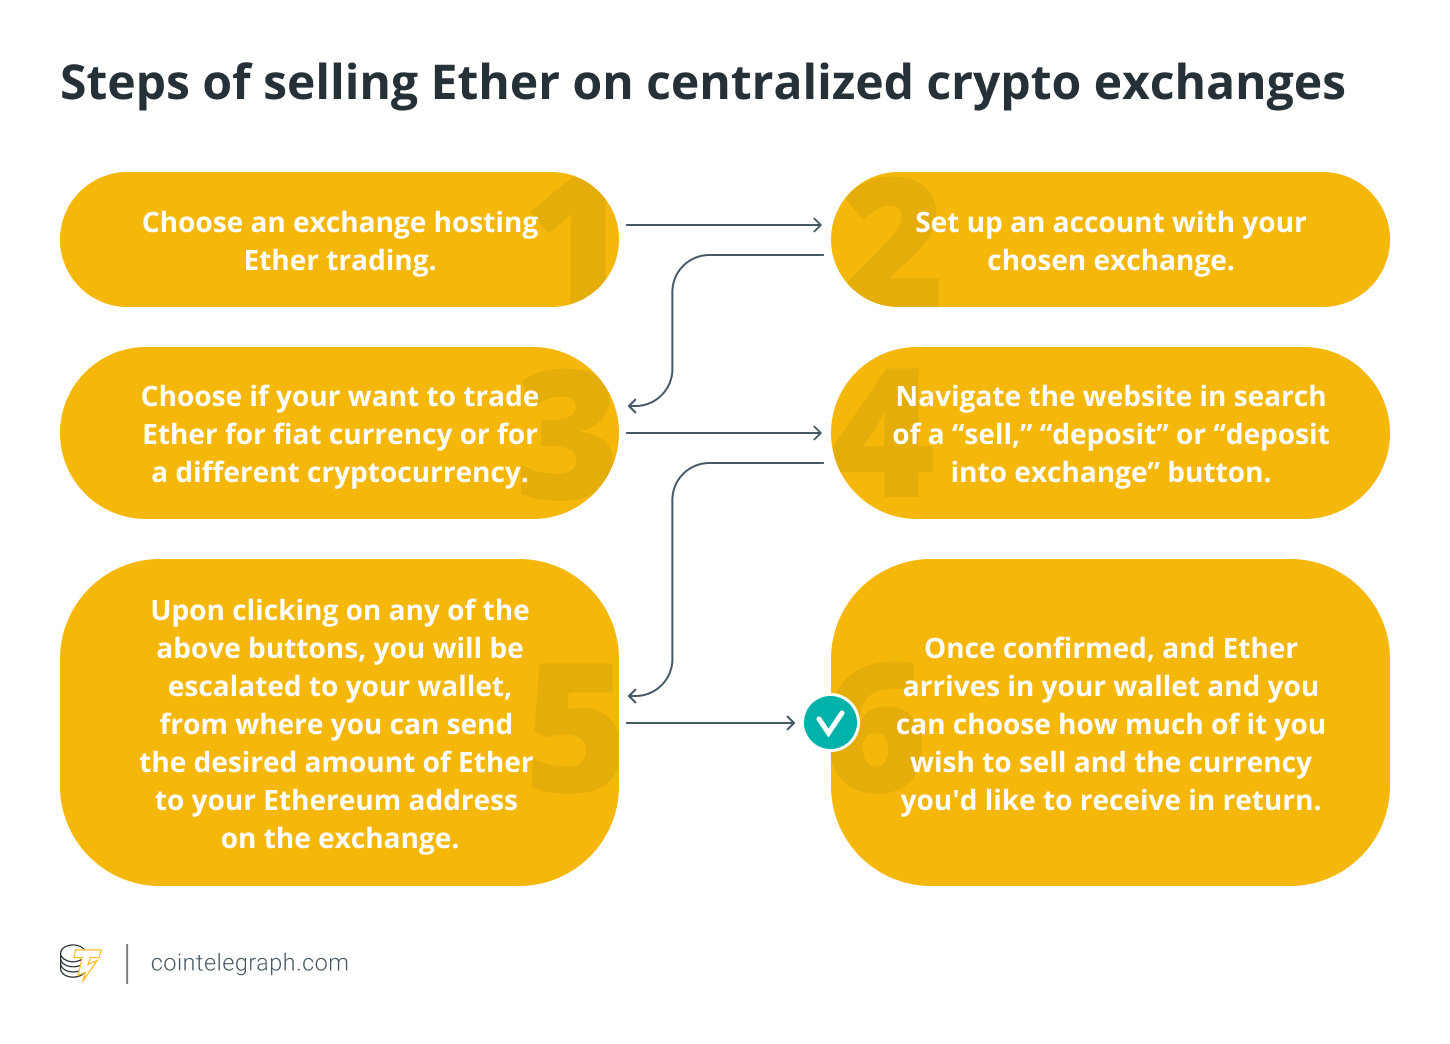 Steps of selling Ether on centralized crypto exchanges